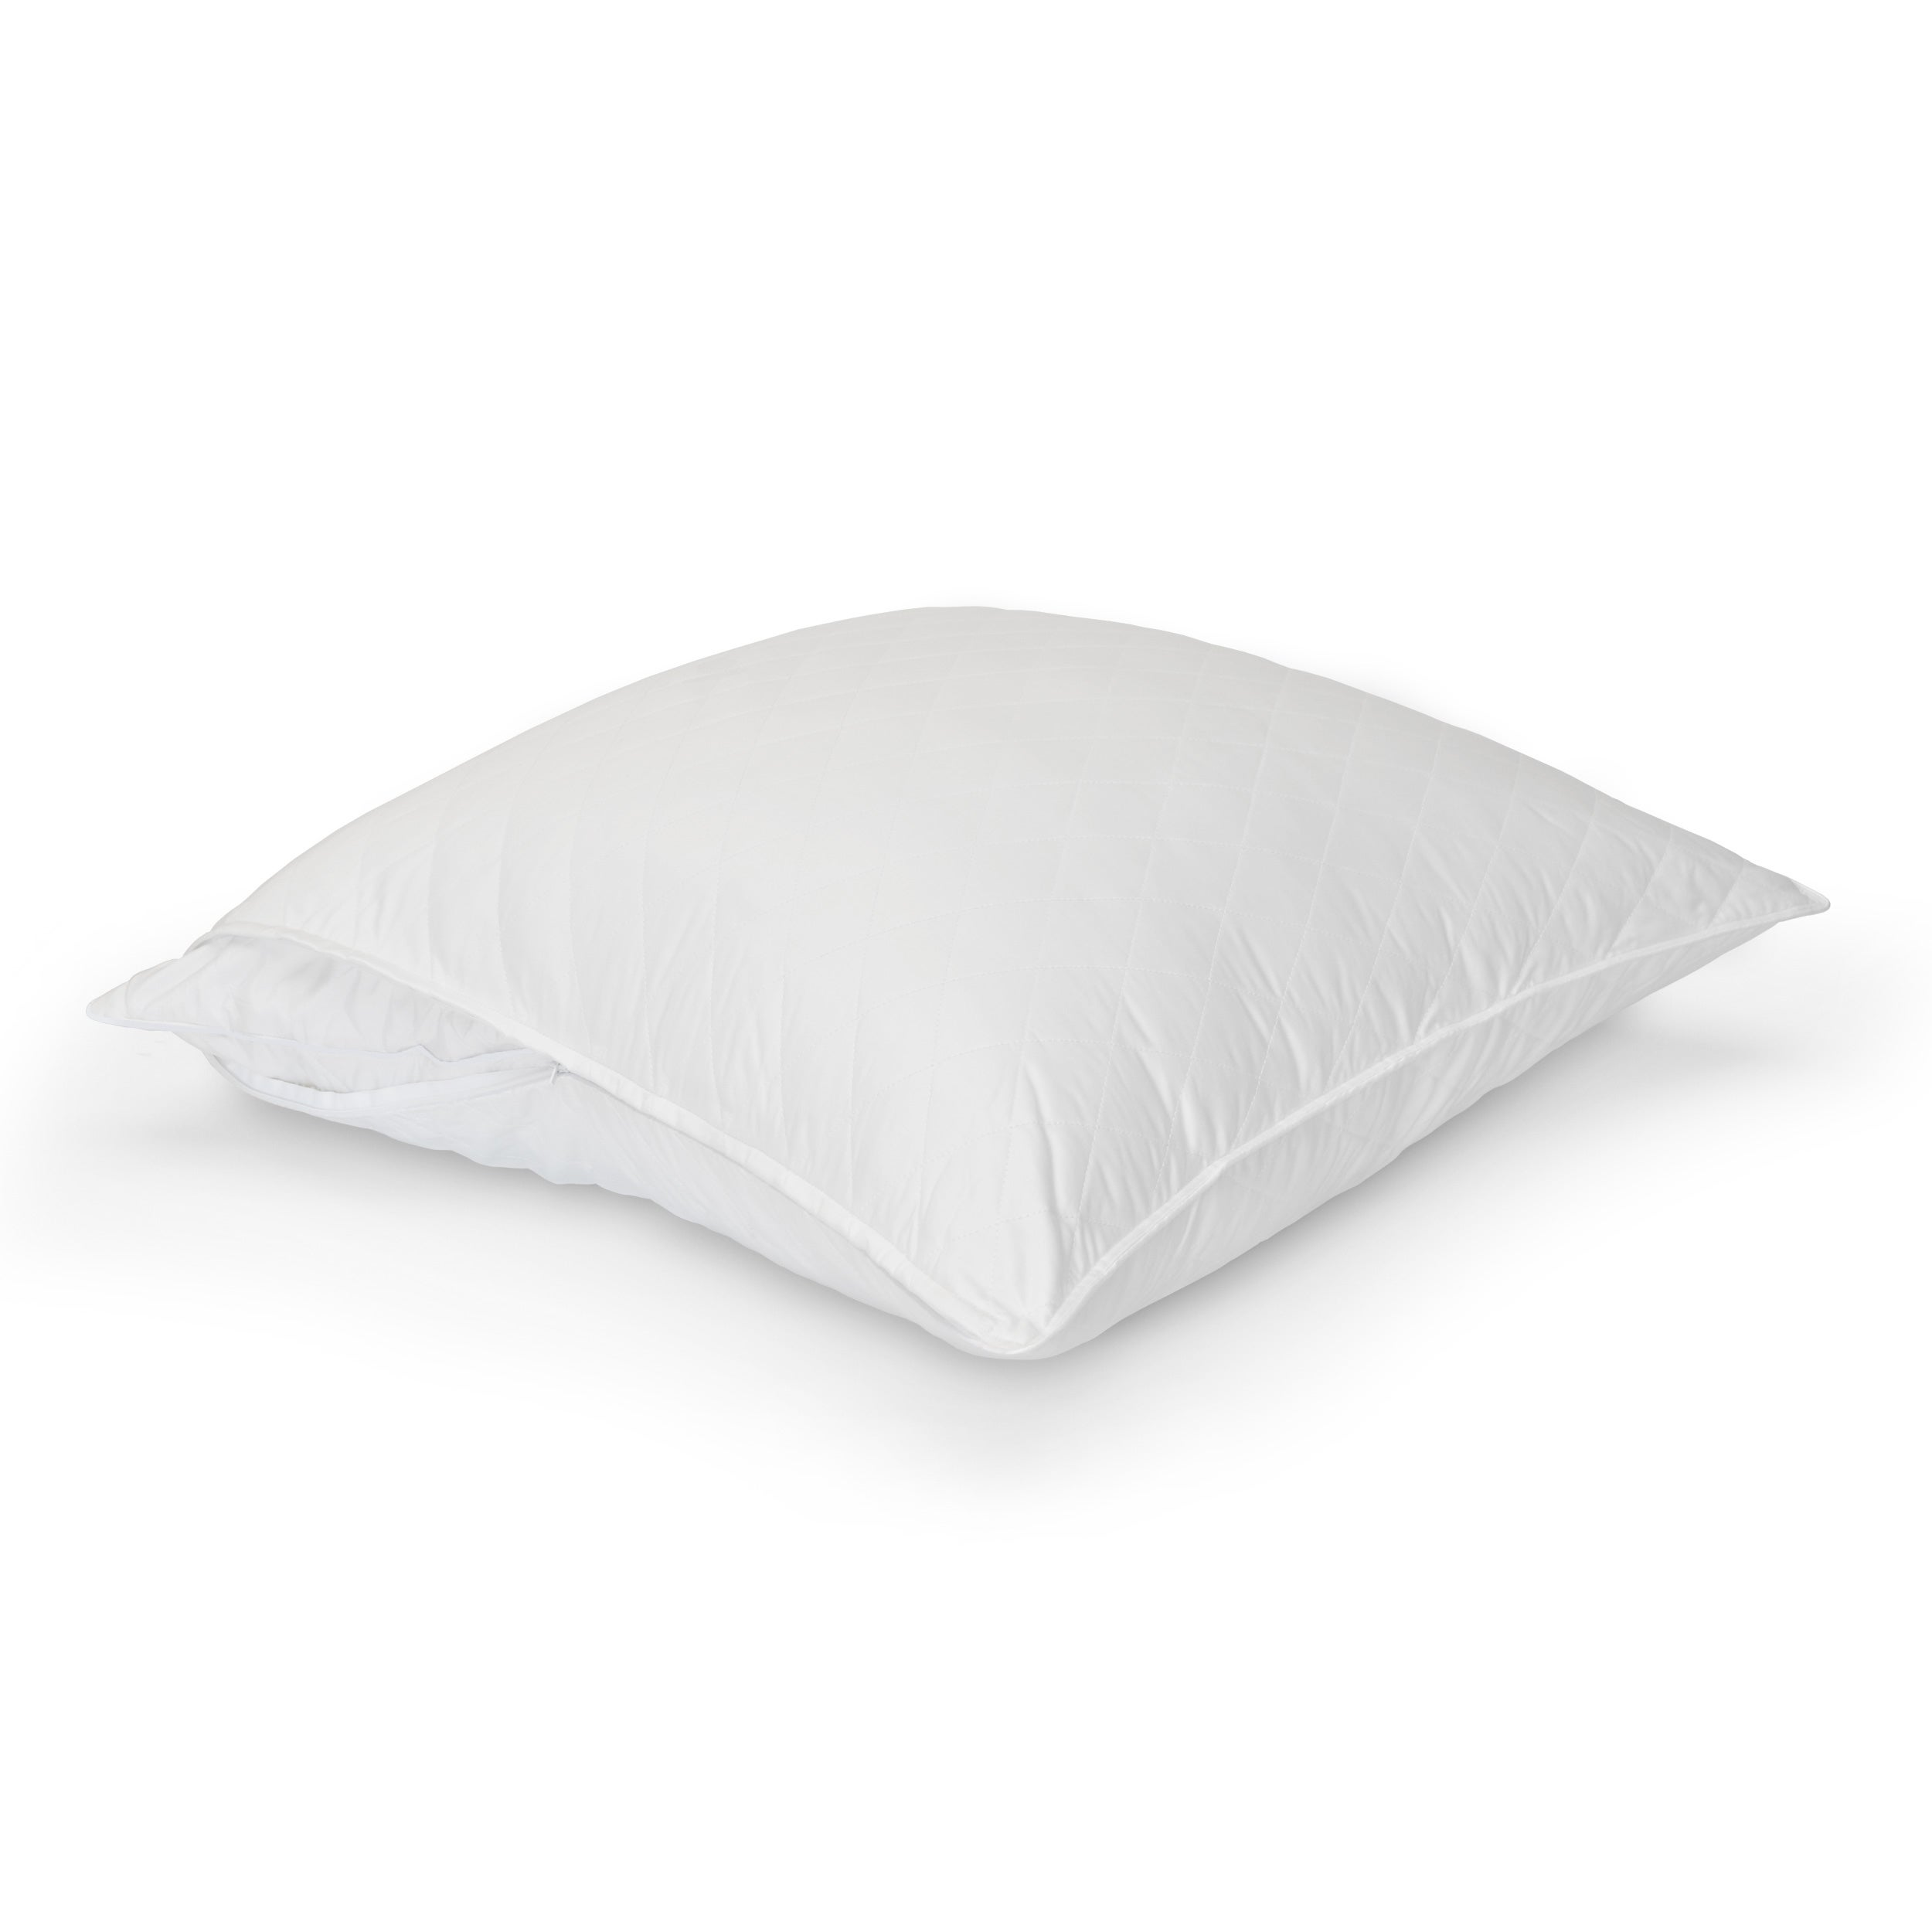 pin protectors cooling pillow white threshold protector standard queen